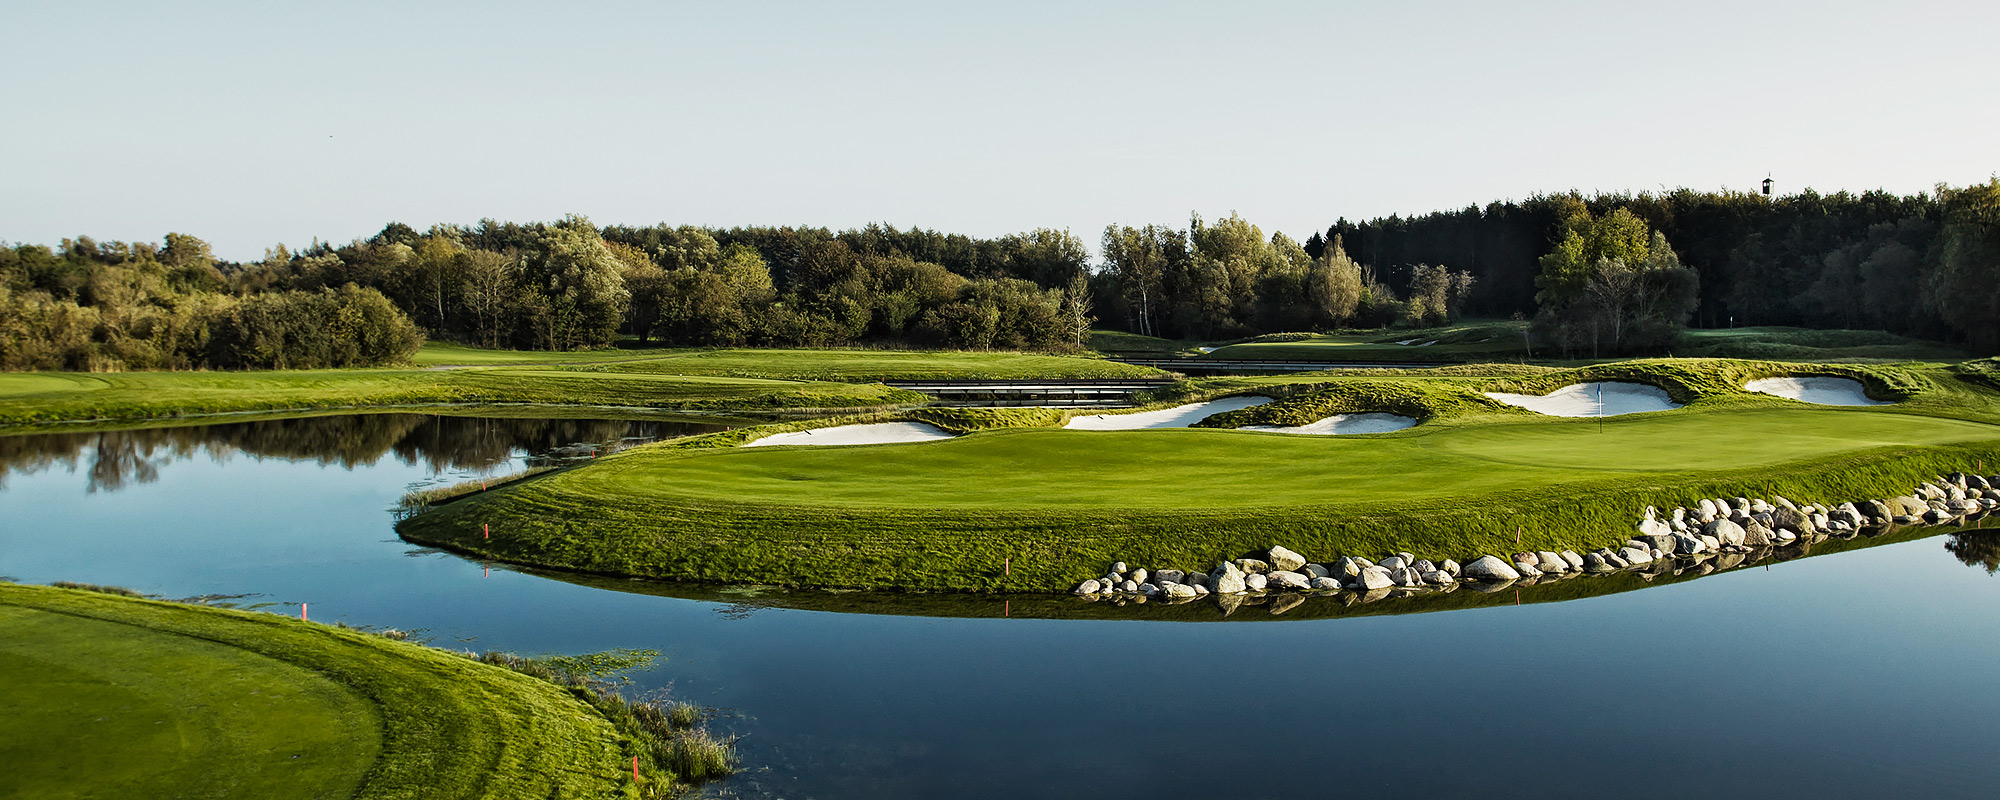 The Scandinavian Golf Club